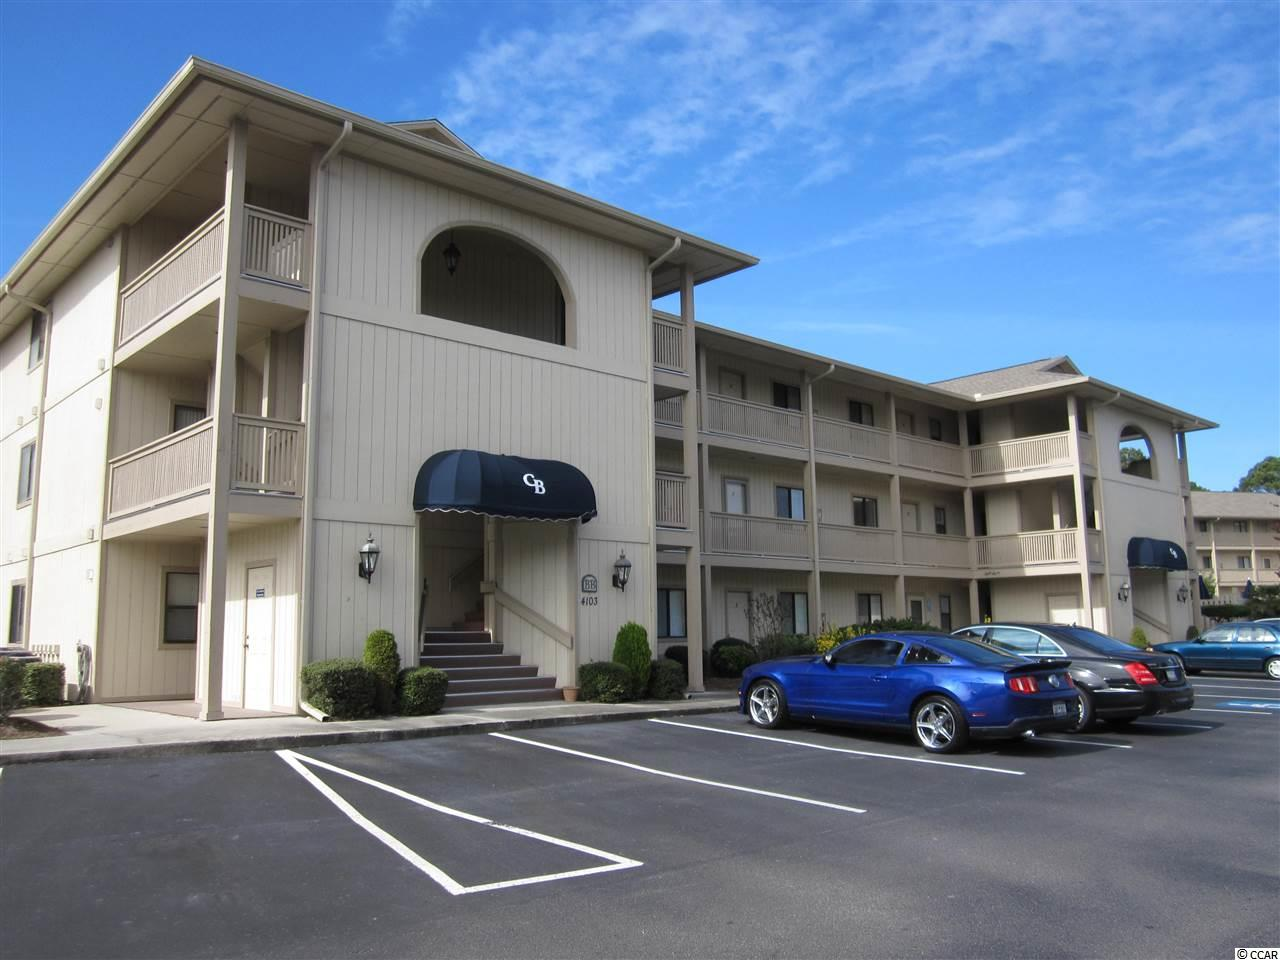 Only currently available condo for sale in MLS at this conveniently located and popular Little River resort.  Spacious two bedroom, two full bathroom end unit with extra side window and screened porch overlooking serene and quiet wooded area.  Includes outside storage closet.  Master bath tub converted to step in shower. Close to golf, shopping, entertainment, NC and SC beaches, the Intercoastal Waterway, restaurants and medical care. Call today! Square footage is approximate and not guaranteed. Buyers responsible for verification.